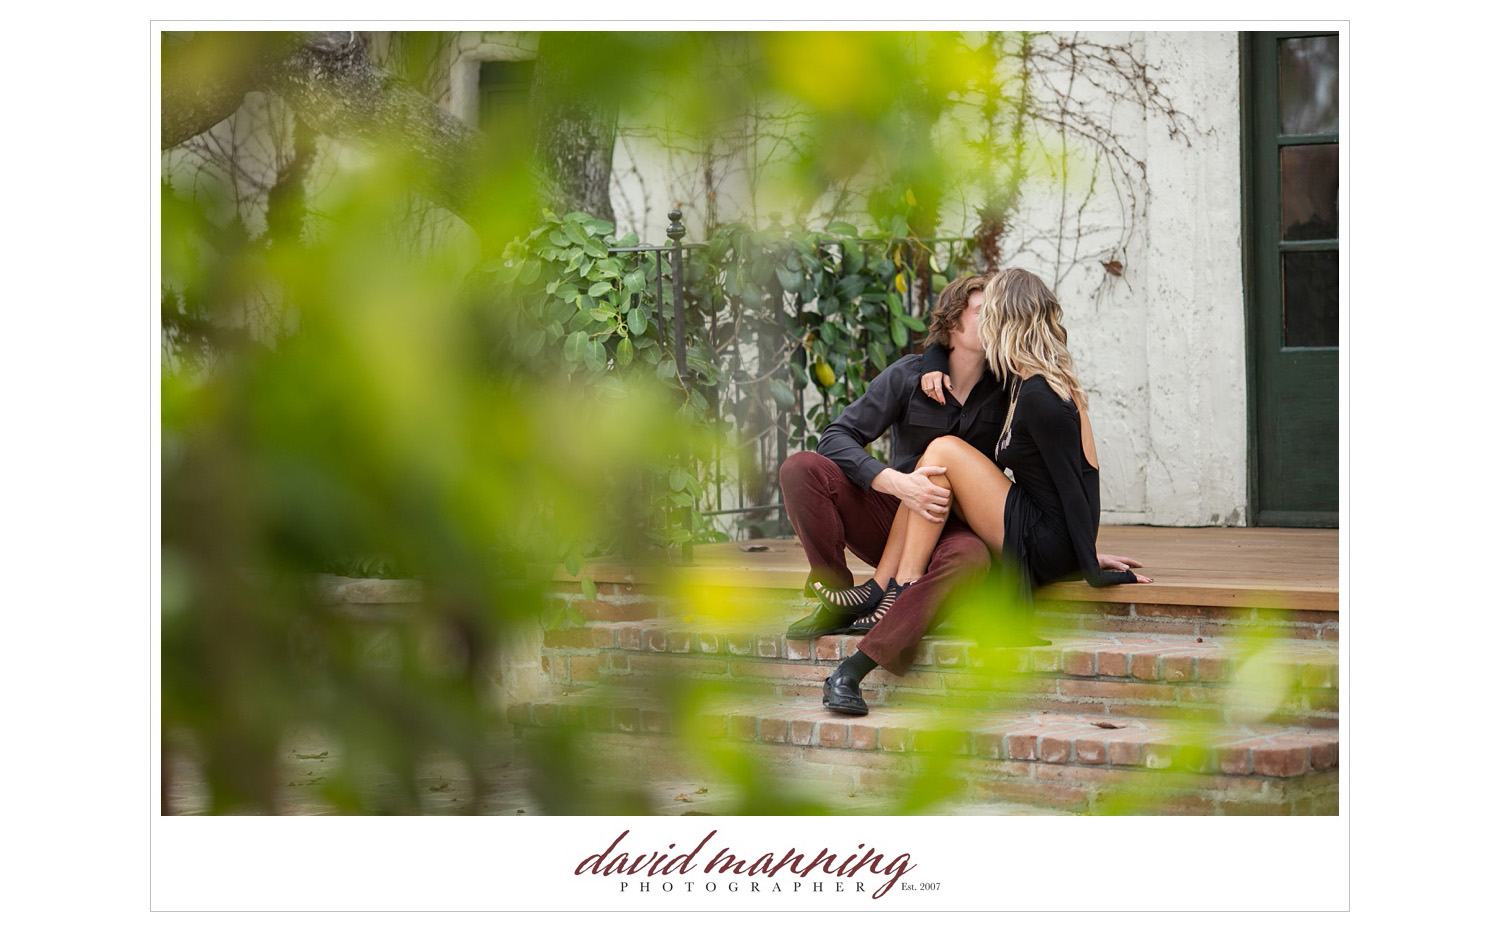 The-Villa-San-Juan-Capistrano-Wedding-Photos-David-Manning-Photographers-0006.jpg